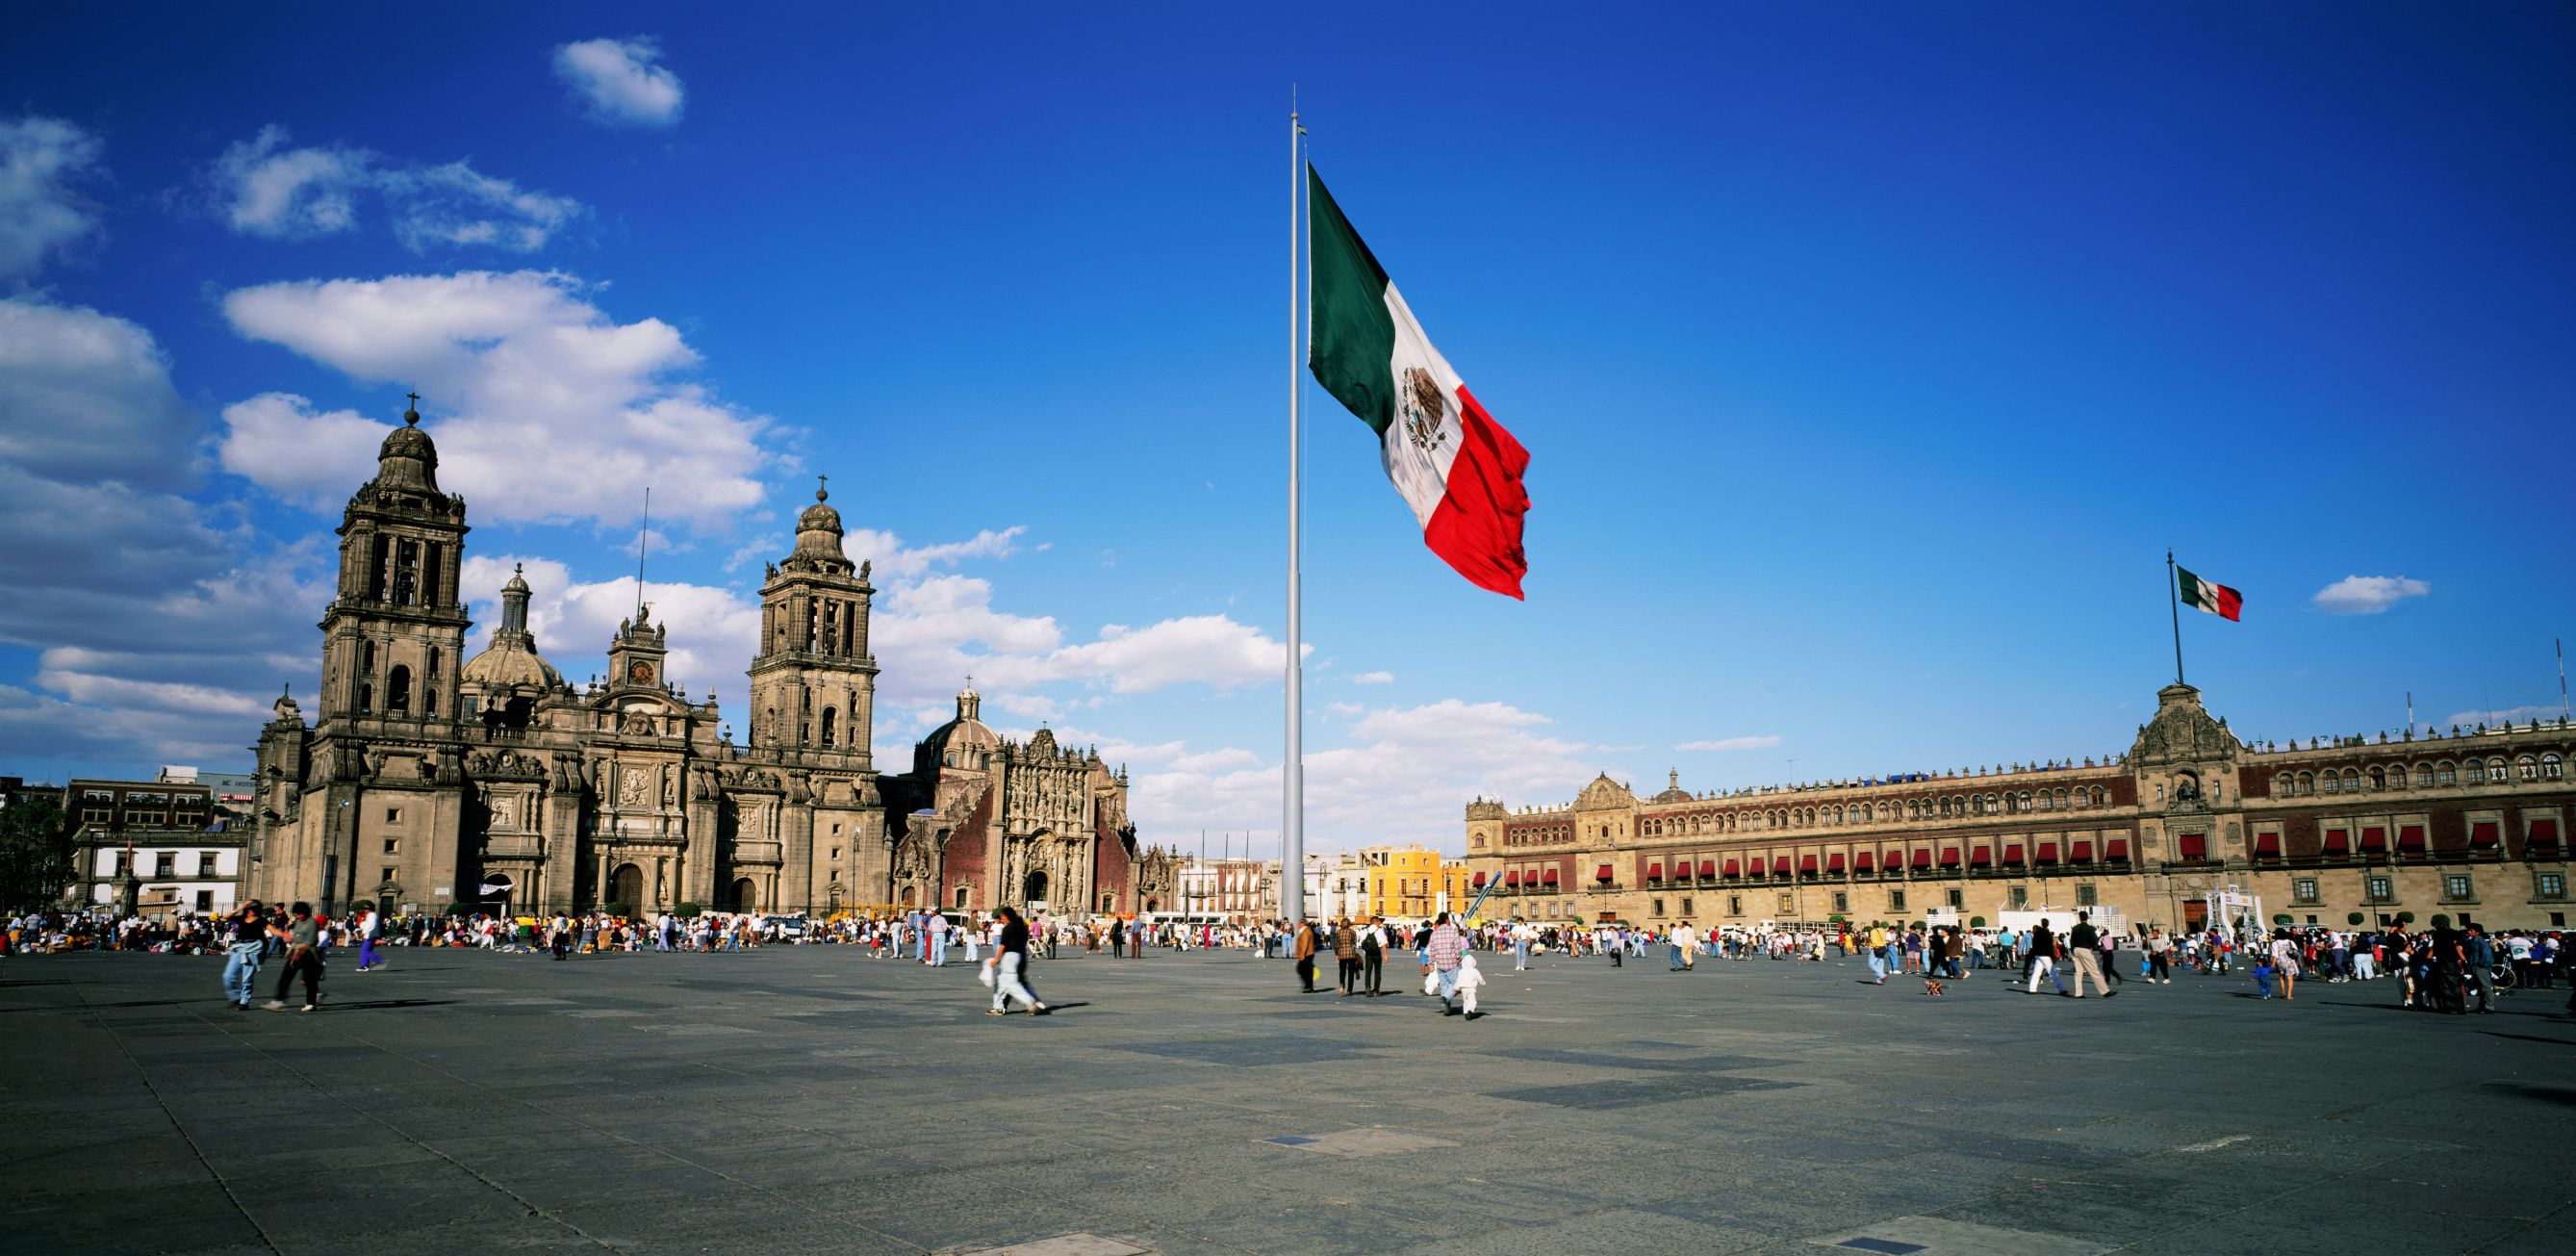 Mexican Silver Production 1825 1849 Increased By 5 4 Million Pesos James Mexico Travel Mexico City Visiting Mexico City